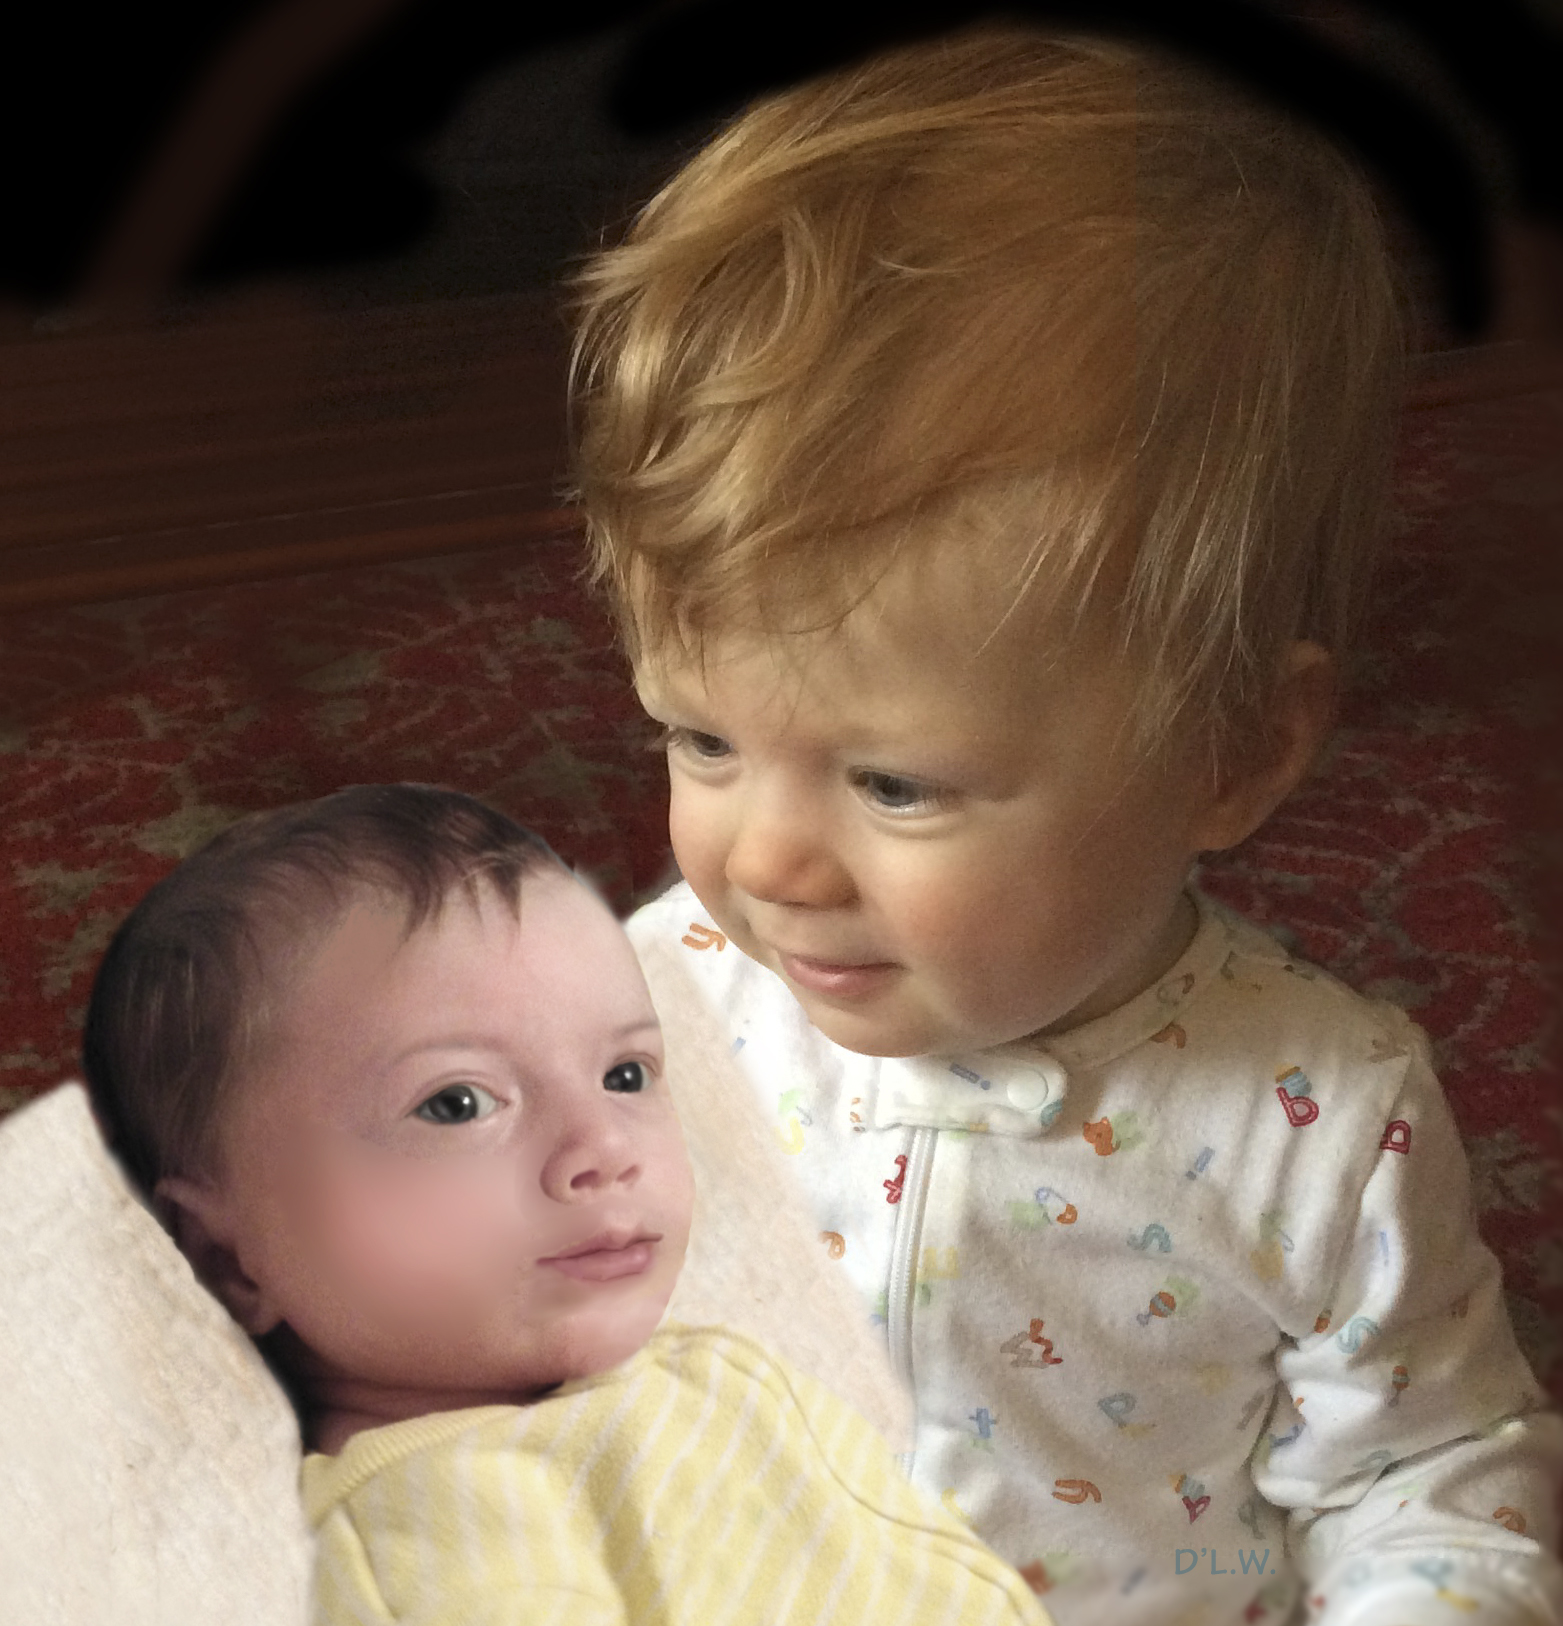 What Meghan and Harry's babies would look like